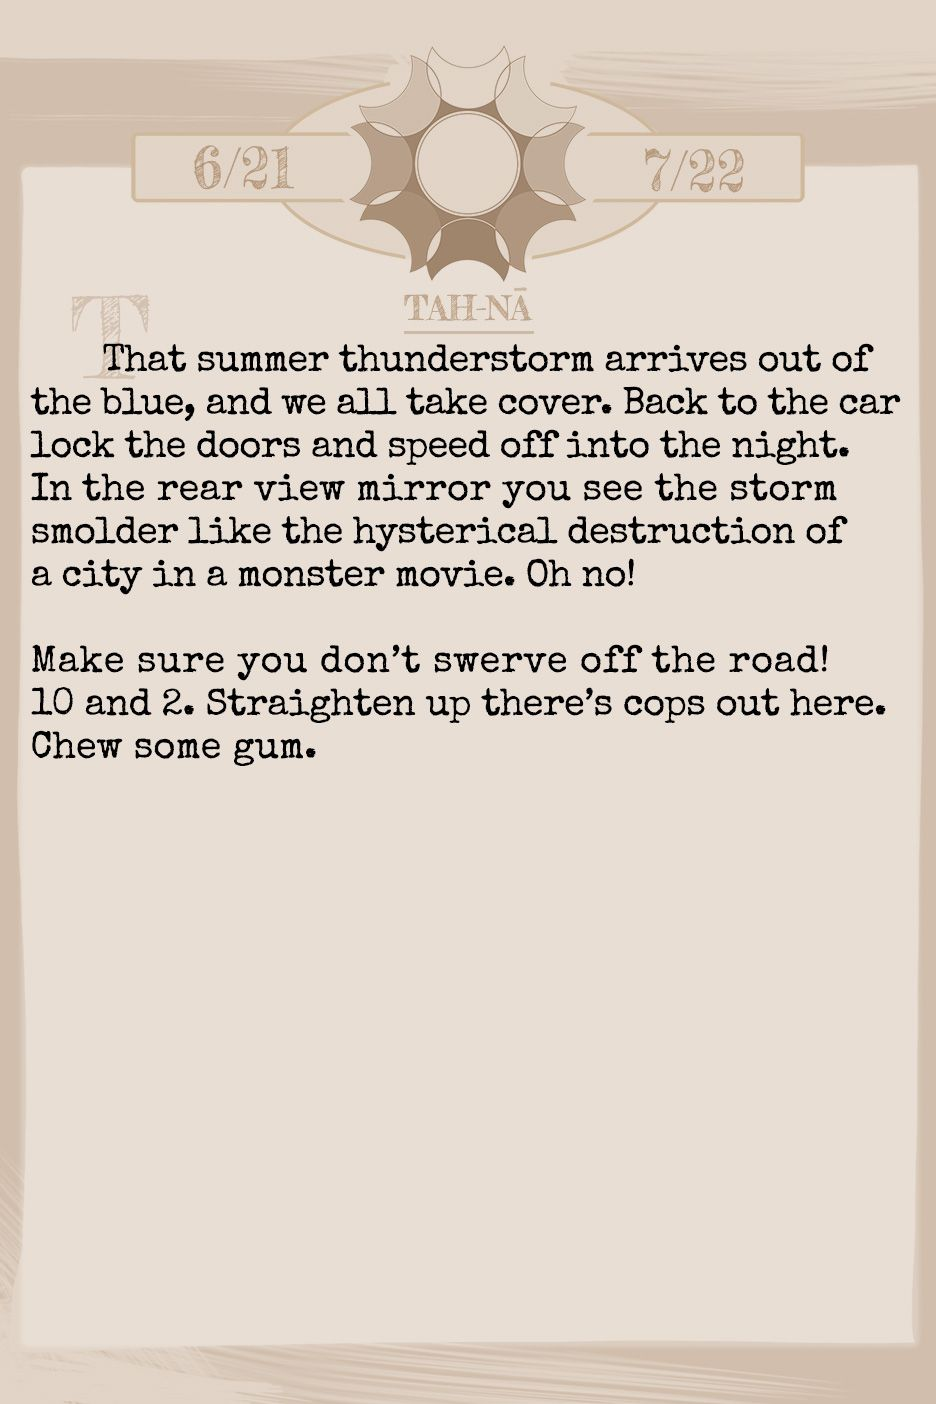 July 2019 Horoscope (Old sign: Cancer) That summer thunderstorm arrives out of the blue, and we all take cover. Back to the car lock the doors and speed off into the night. In the rear view mirror you see the storm smolder like the hysterical destruction of a city in a monster movie. Oh no! Make sure you don't swerve off the road! 10 and 2. Straighten up there's cops out here. Chew some gum.